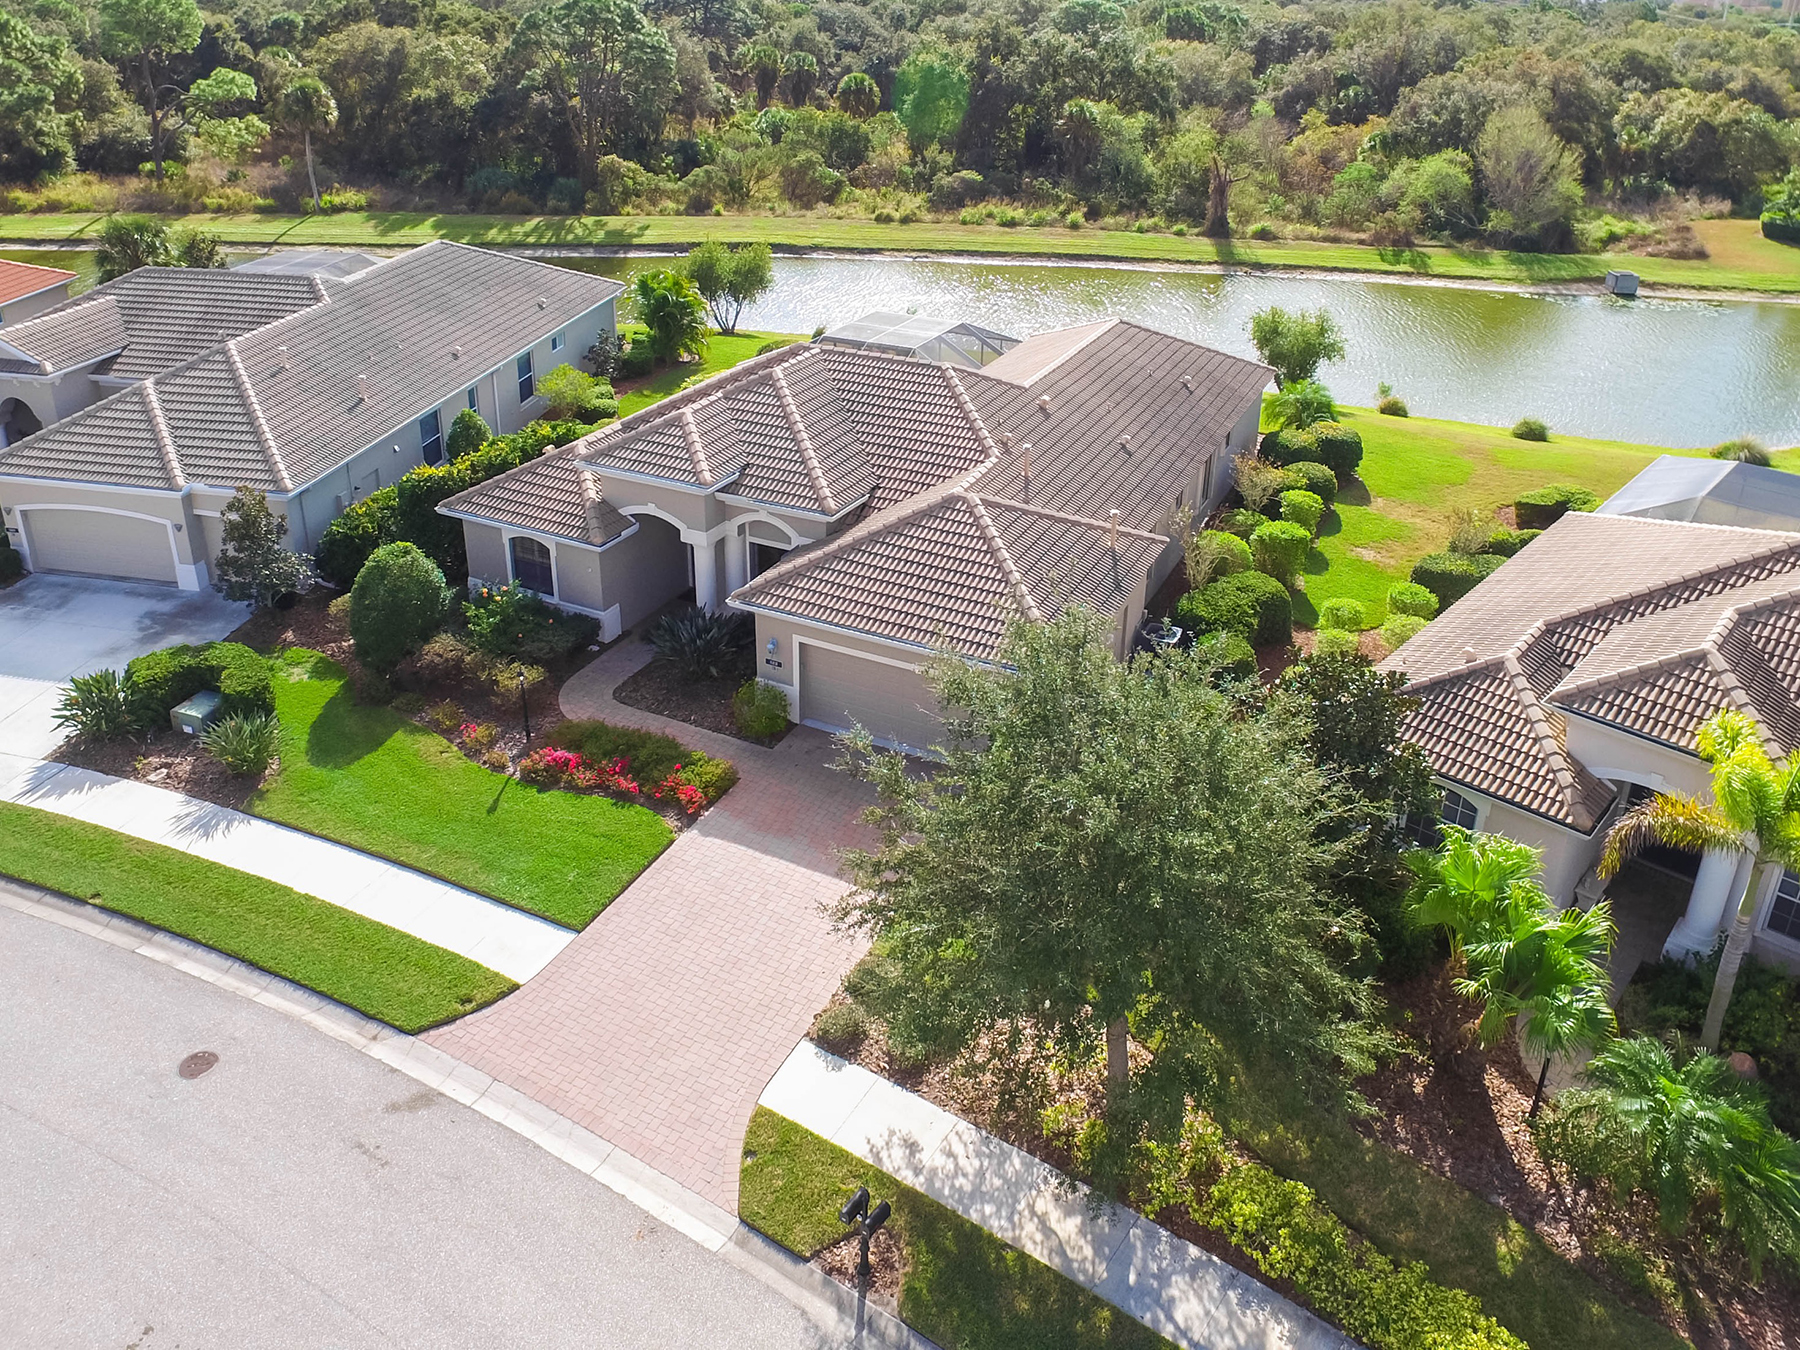 Single Family Home for Sale at WILLOWBEND 588 Crane Prairie Way Osprey, Florida, 34229 United States